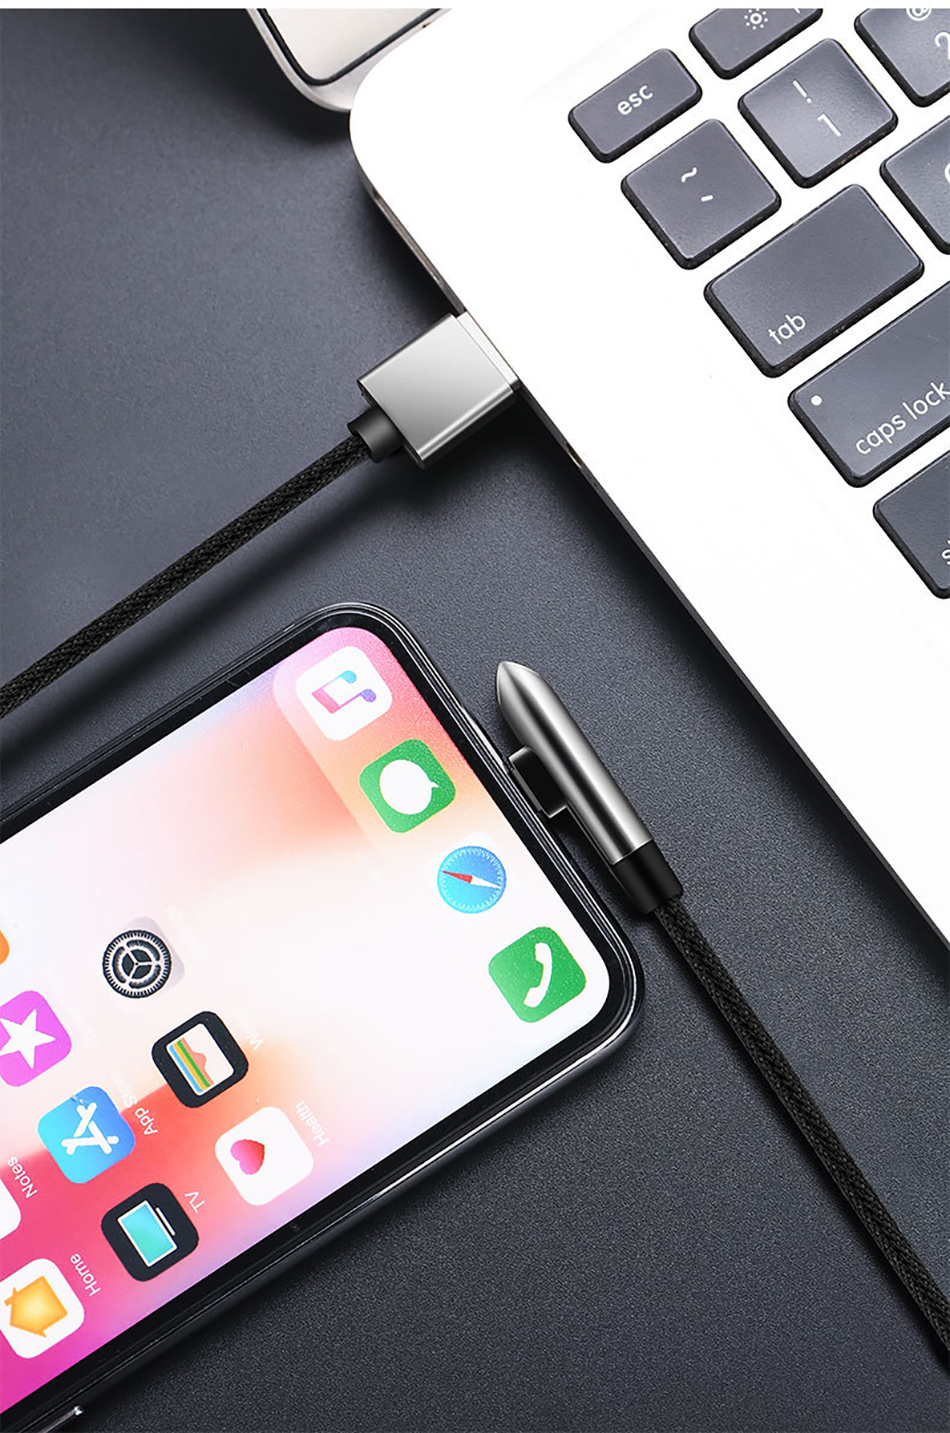 !ACCEZZ USB Cable For Apple iPhone X XS MAX XR 8 7 6 6S 5 5S Plus IOS 10 11 12 Lighting Charger Bullet Style Data USB Cable Cord (13)